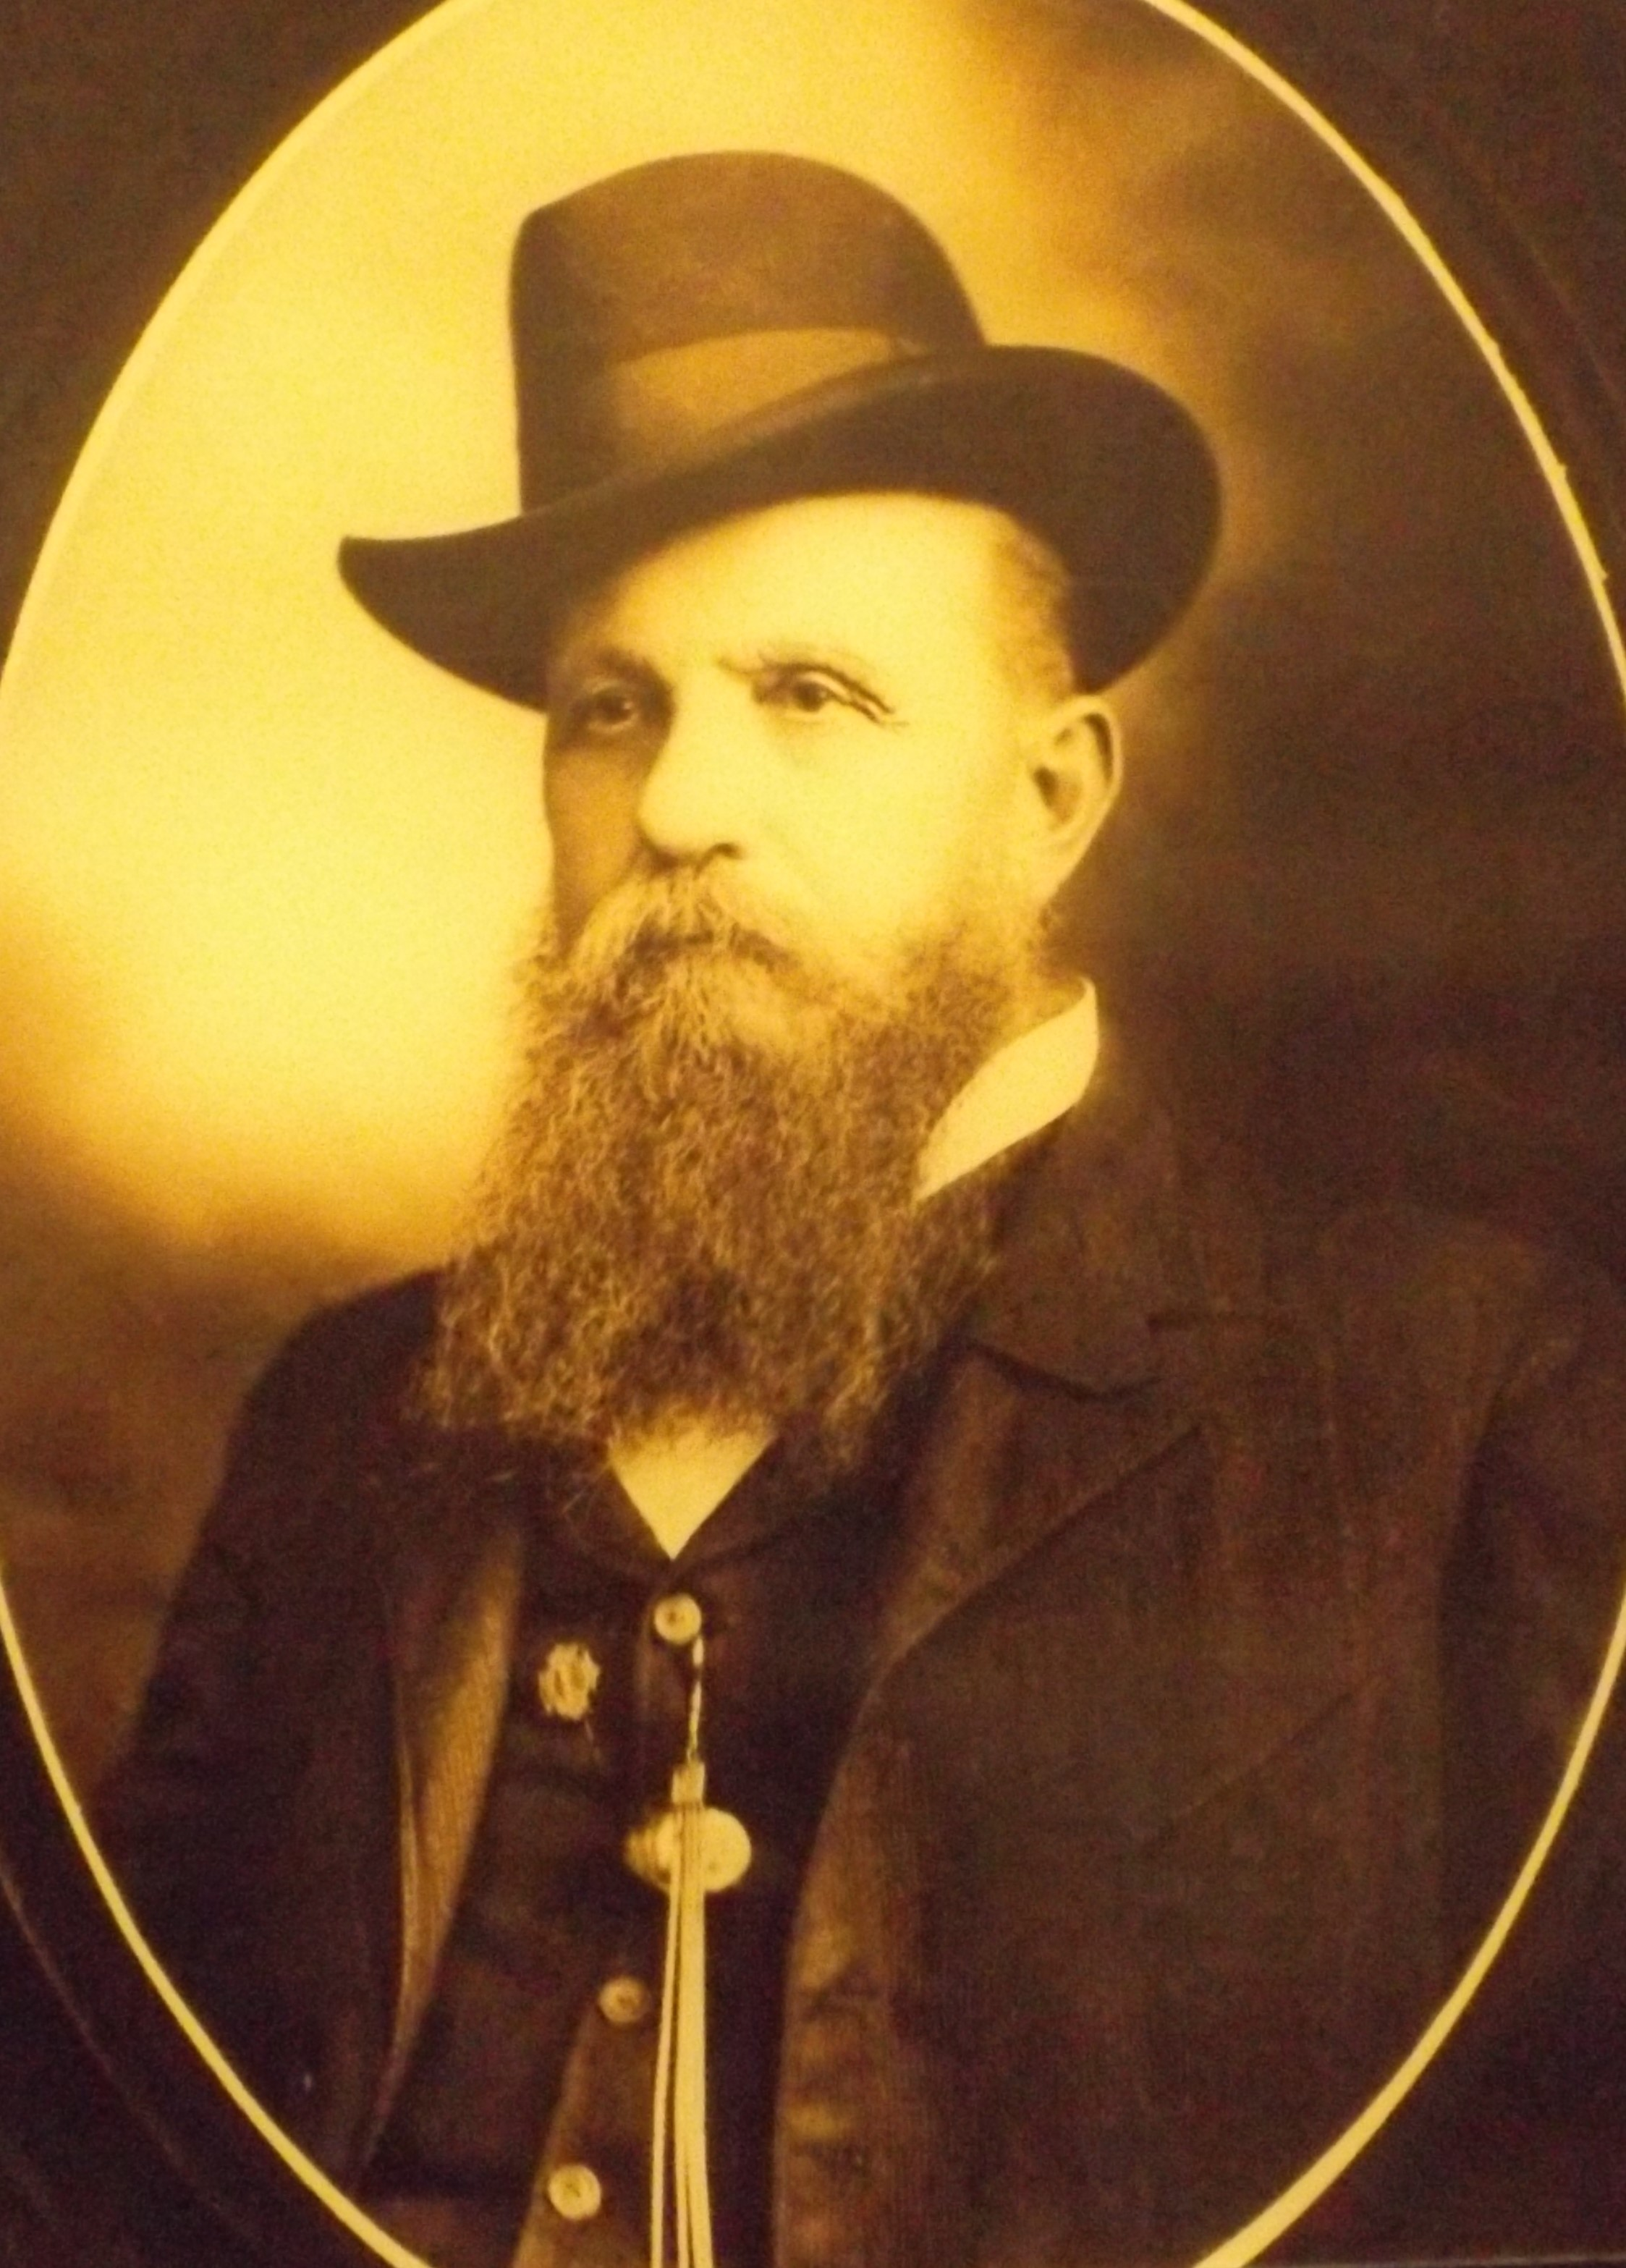 William Fuller, the  General 's conductor  (Southern Museum of Civil War and Locomotive History)